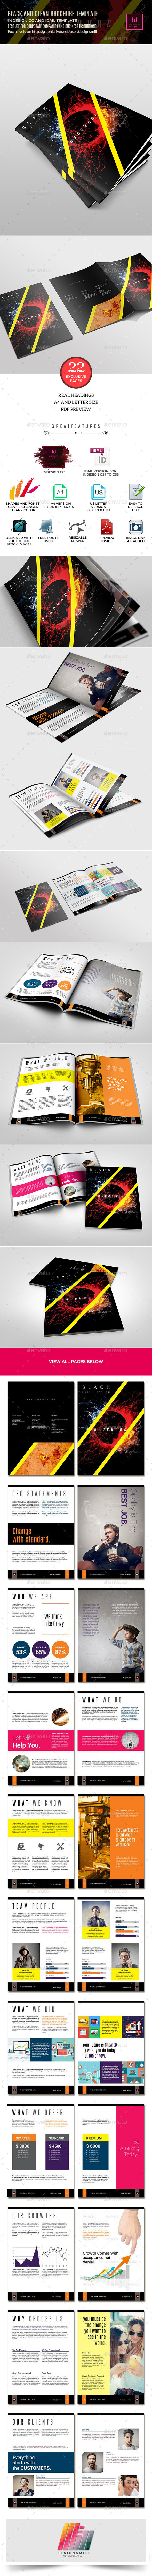 GraphicRiver Black and Clean Multipurpose Brochure Template 10288894